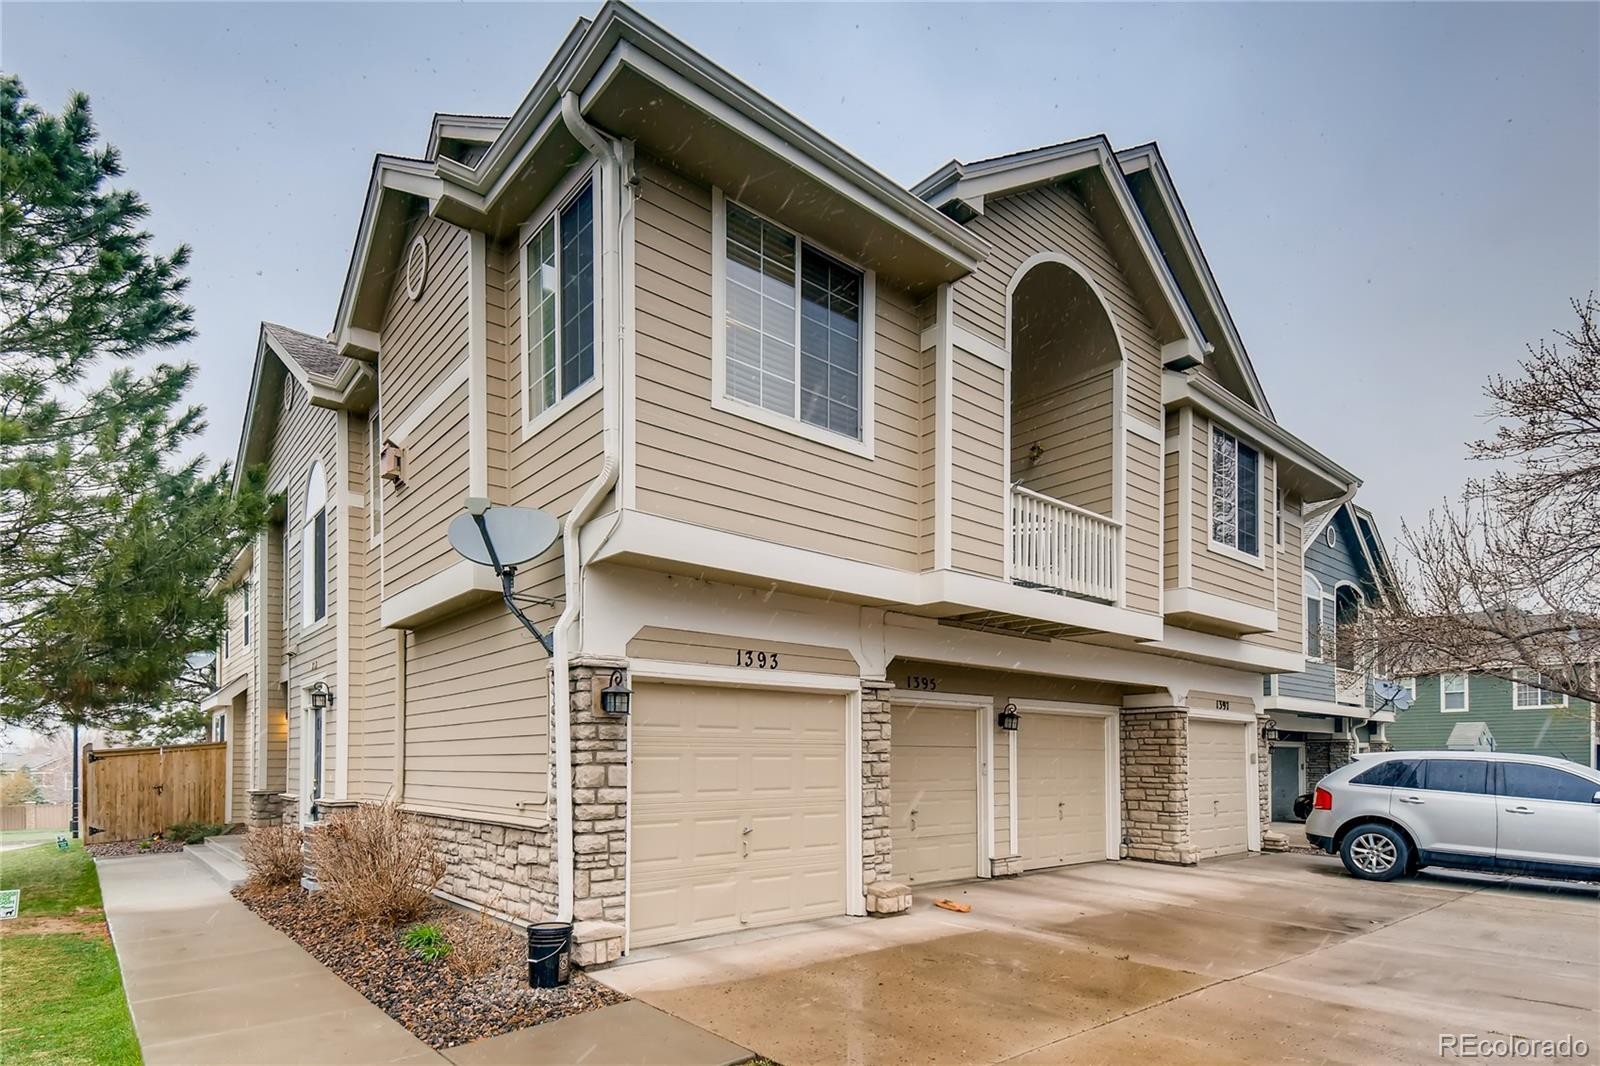 Check Out This Updated & Move-In Ready 2bd/2ba Townhome w/Attached Garage In The Wonderful Community of Carlyle Park In Highlands Ranch! Open & Bright Living Area w/Tall Vaulted Ceilings And A Cozy Fireplace * Updated Kitchen That Includes Beautiful White Cabinets, Granite Countertops, Stainless Appliances & A Gas Range * In-Unit Washer & Dryer are INCLUDED * Spacious Master Suite w/Tons Of Closet Space * Updated Bathrooms w/New Vanities * Attached One-Car Garage * Minutes To Tons of Great Shopping & Restaurants * Close To Endless Trails, Parks, & Community Rec Center * Easy Access To C-470 * Hurry And Come See This Great Townhome Before It is Gone!